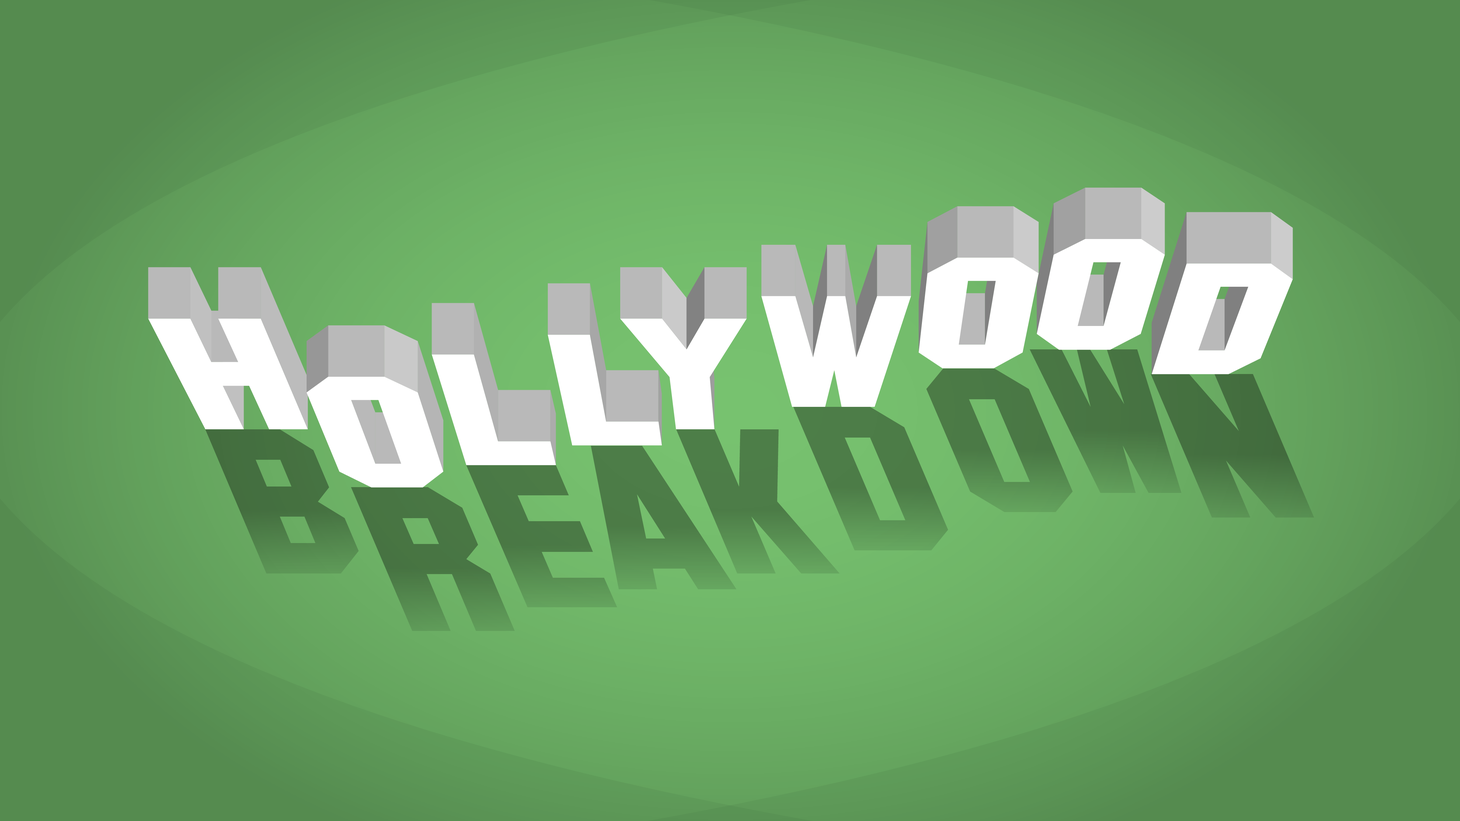 Scott Feinberg, lead awards analyst for the Hollywood Reporter, joins Kim Masters for one last Hollywood Breakdown before the Academy Awards. Some major categories seem to have been largely decided, but others are more up in the air.